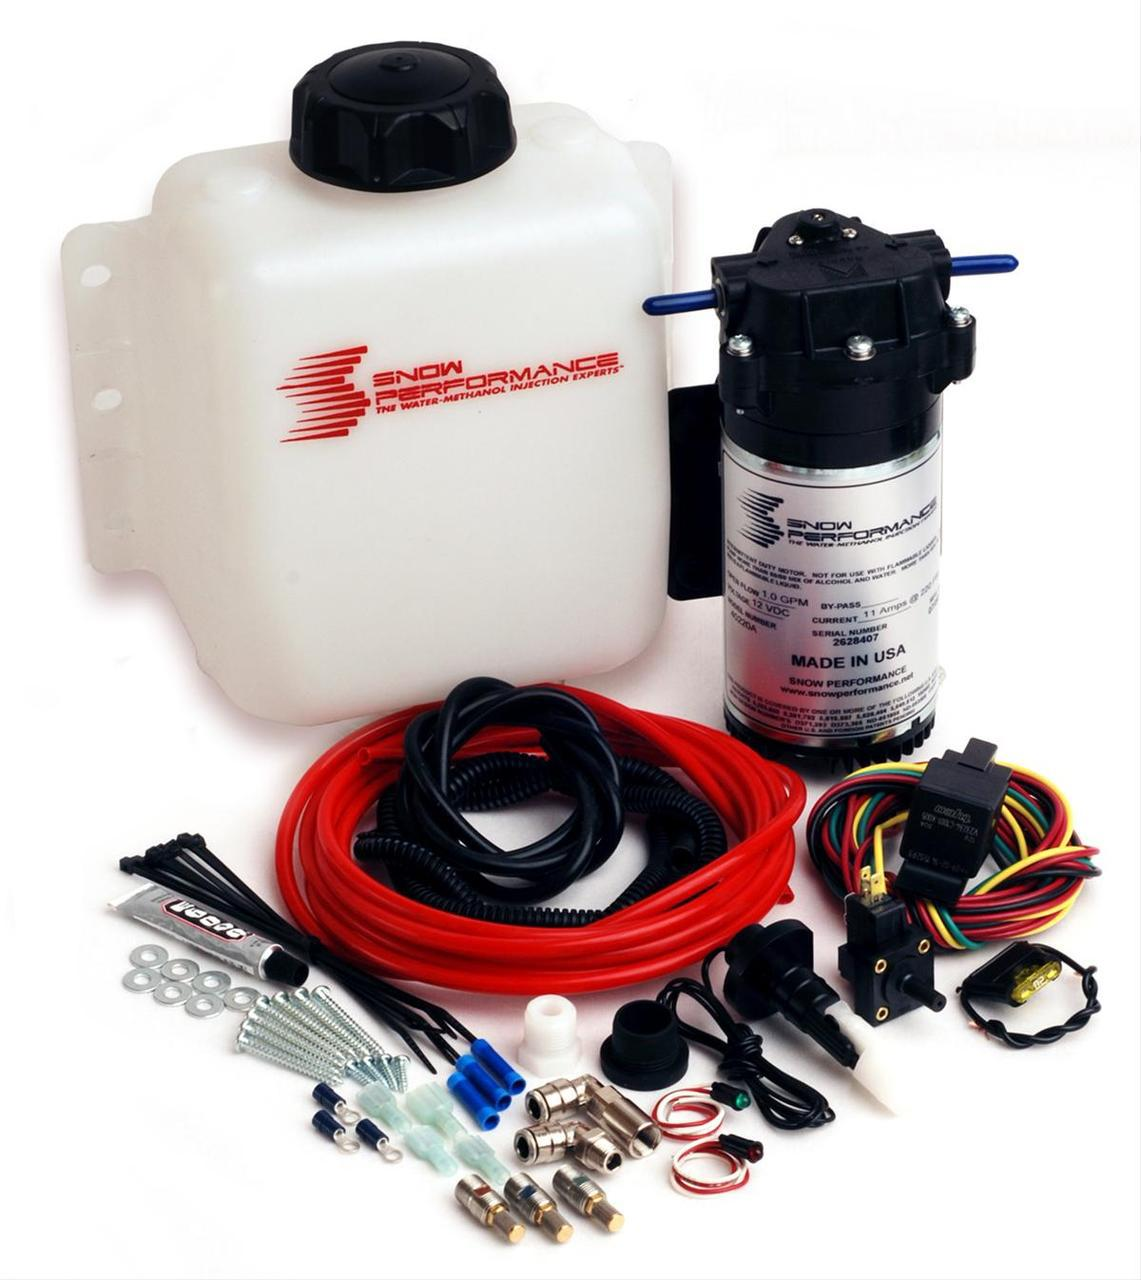 Snow Performance Stage 1 Boost Cooler Snowperformance 201 Wiring Diagram